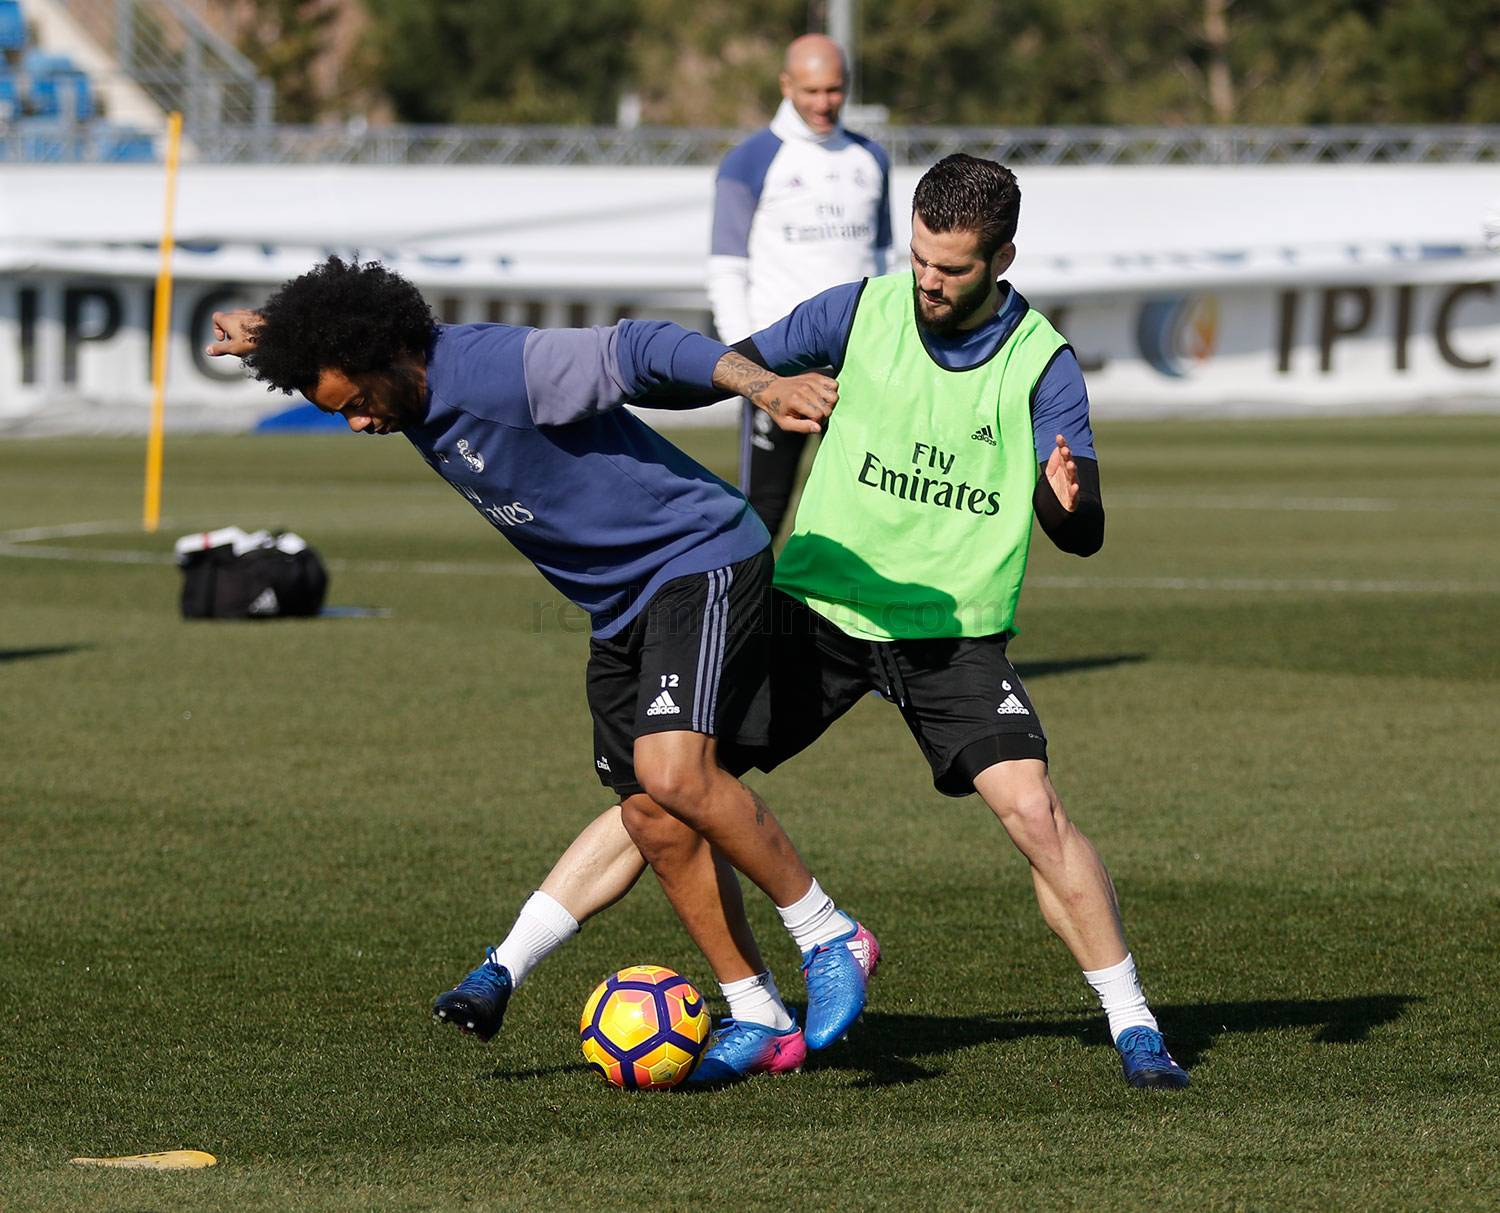 Real Madrid - Entrenamiento del Real Madrid - 20-02-2017